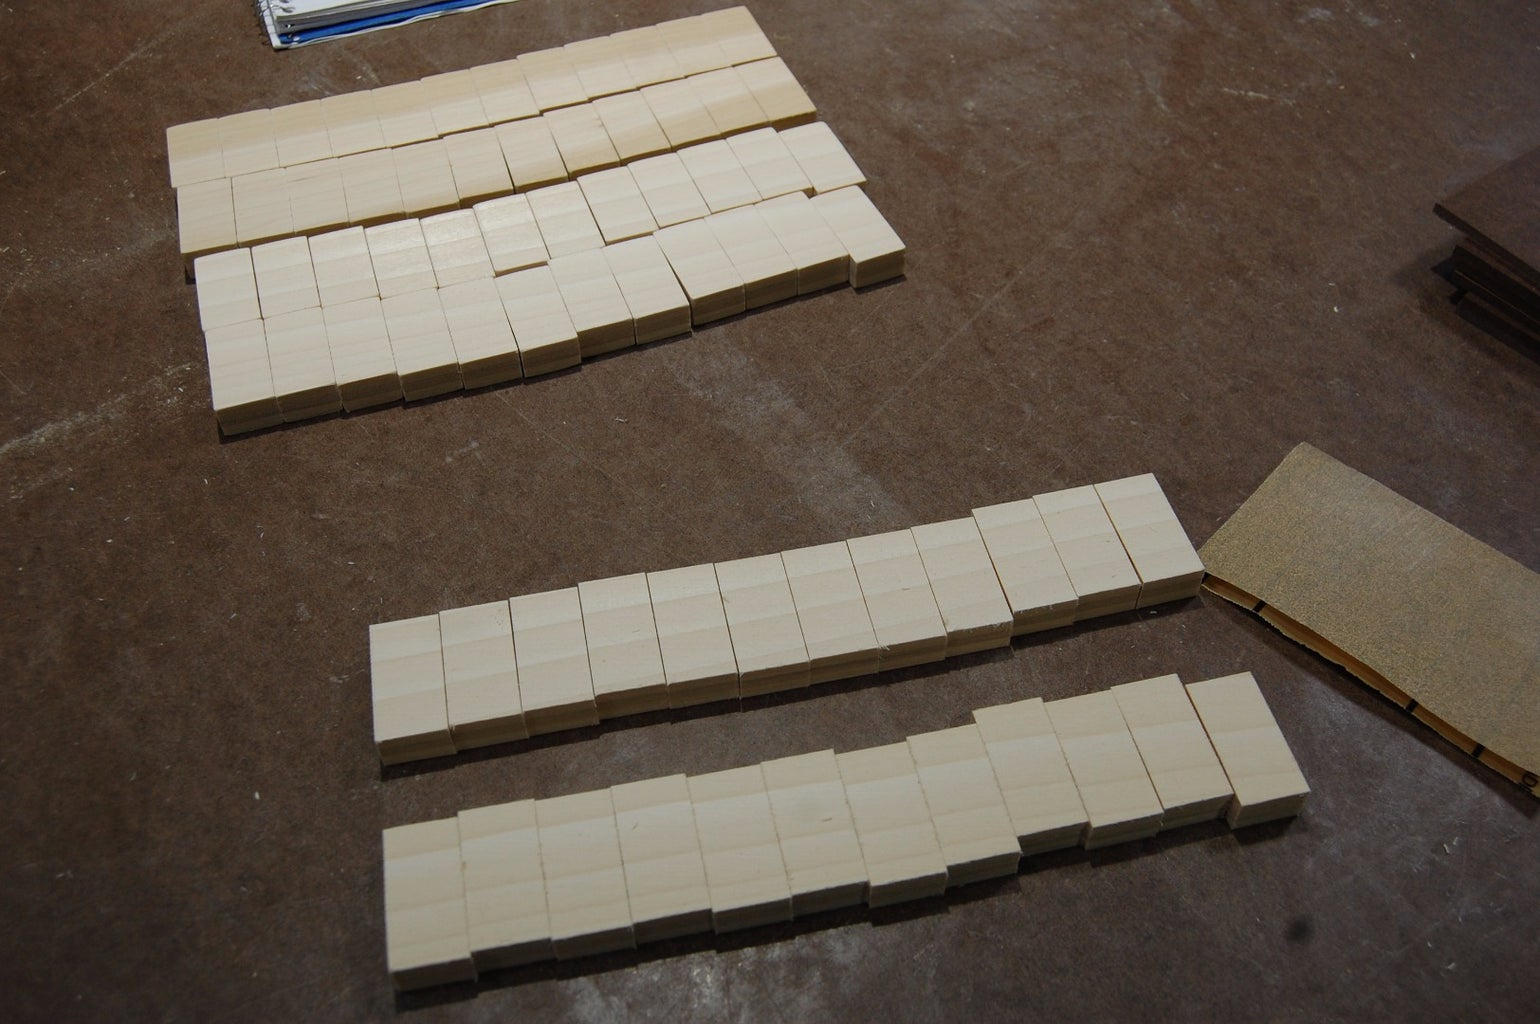 Sanding and Numbering the Tiles